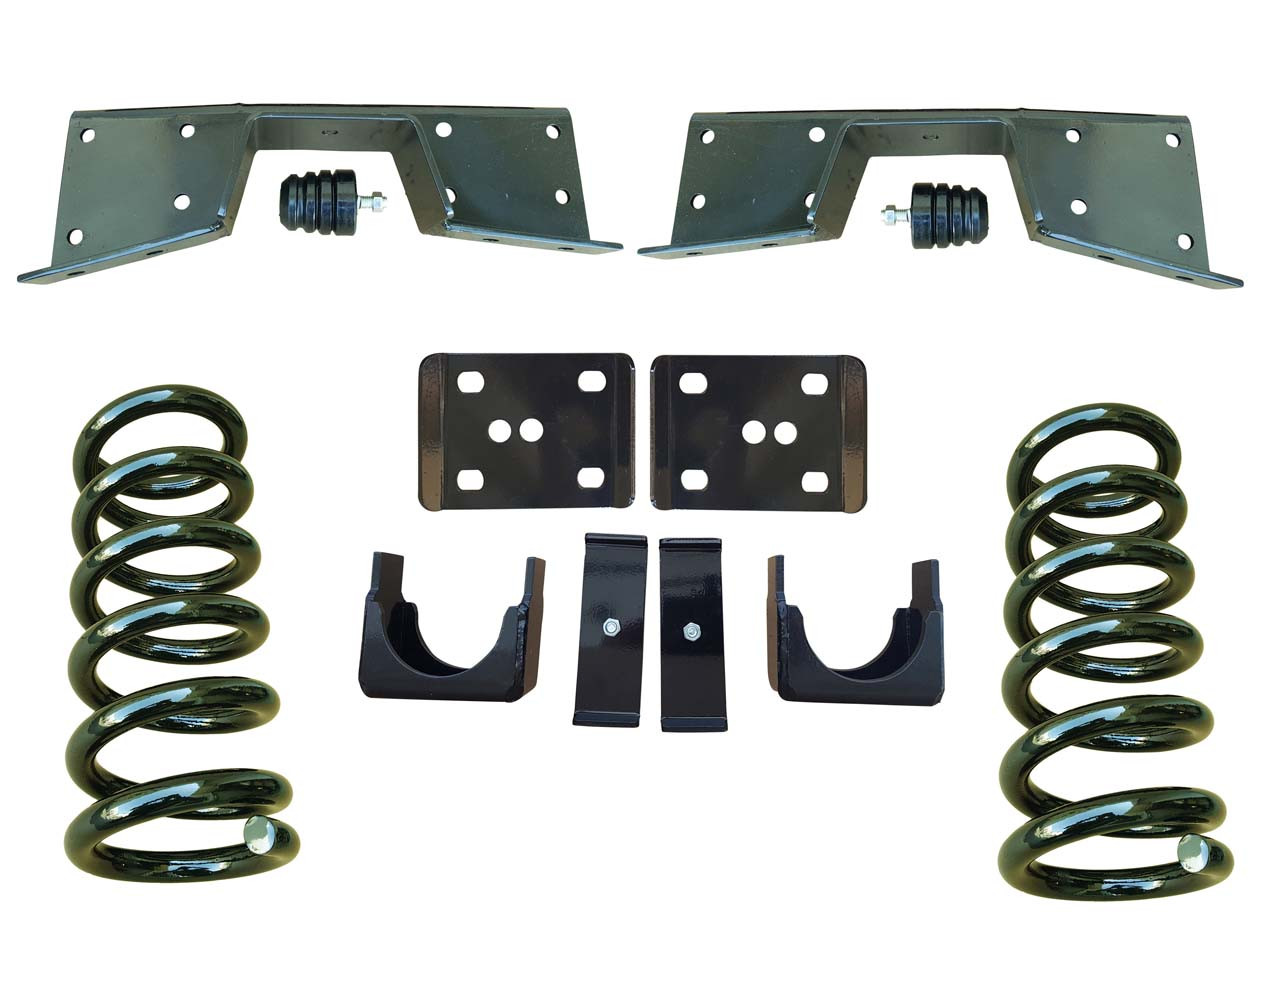 3/6 Lowering Kit and C-Notch for 01-06 Chevrolet Silverado